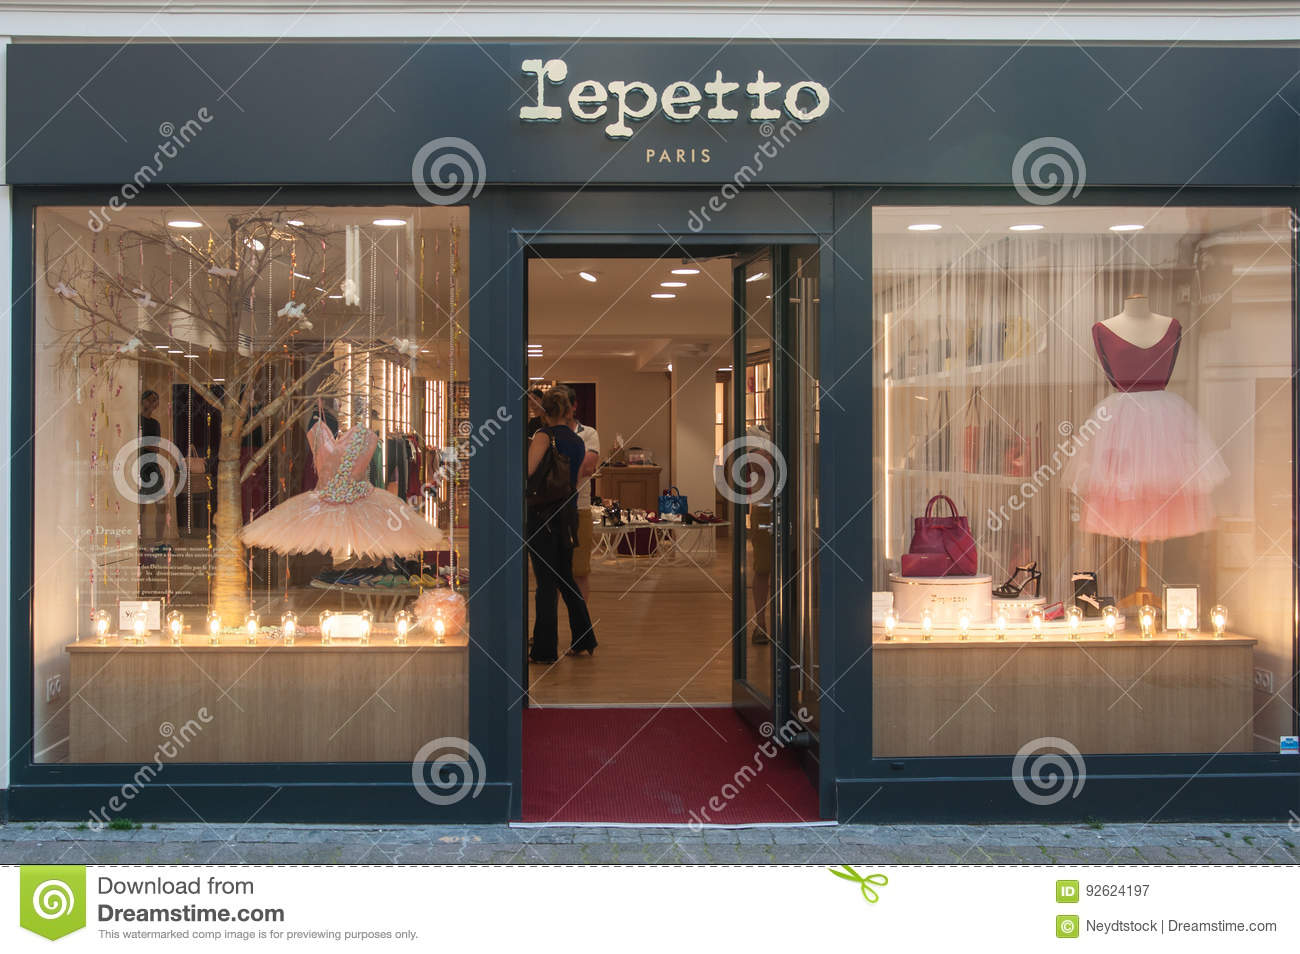 Lepetto store - the traditional brand of classical dance furniture